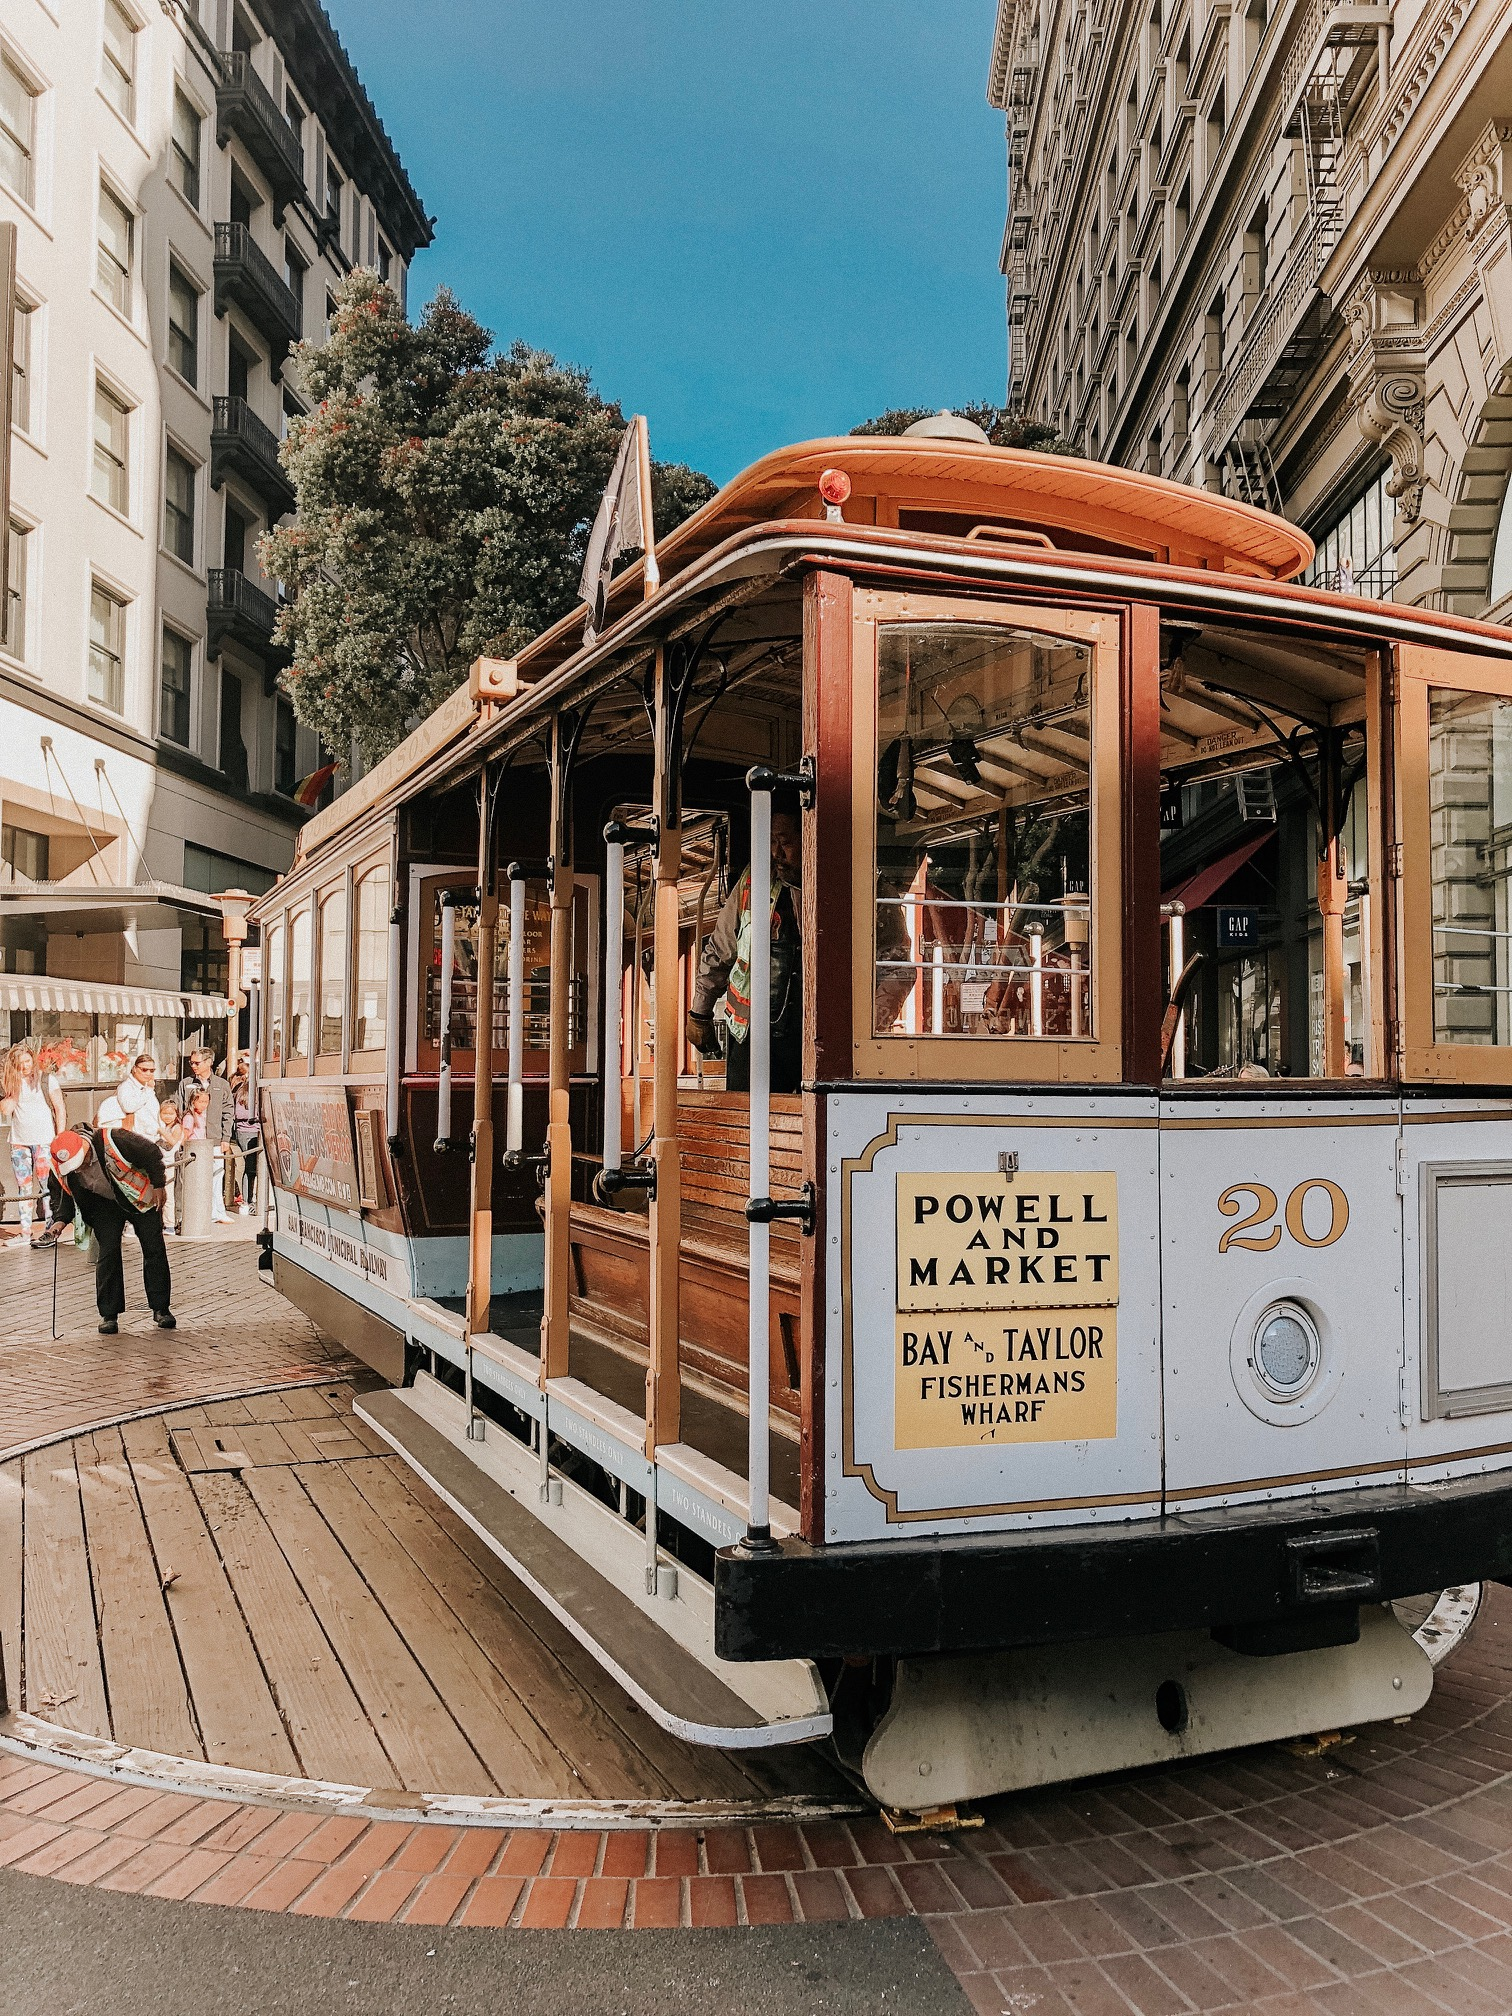 Daily Splendor | Things to do in San Francisco #cablecarride #cablecar #sanfrancisco #california